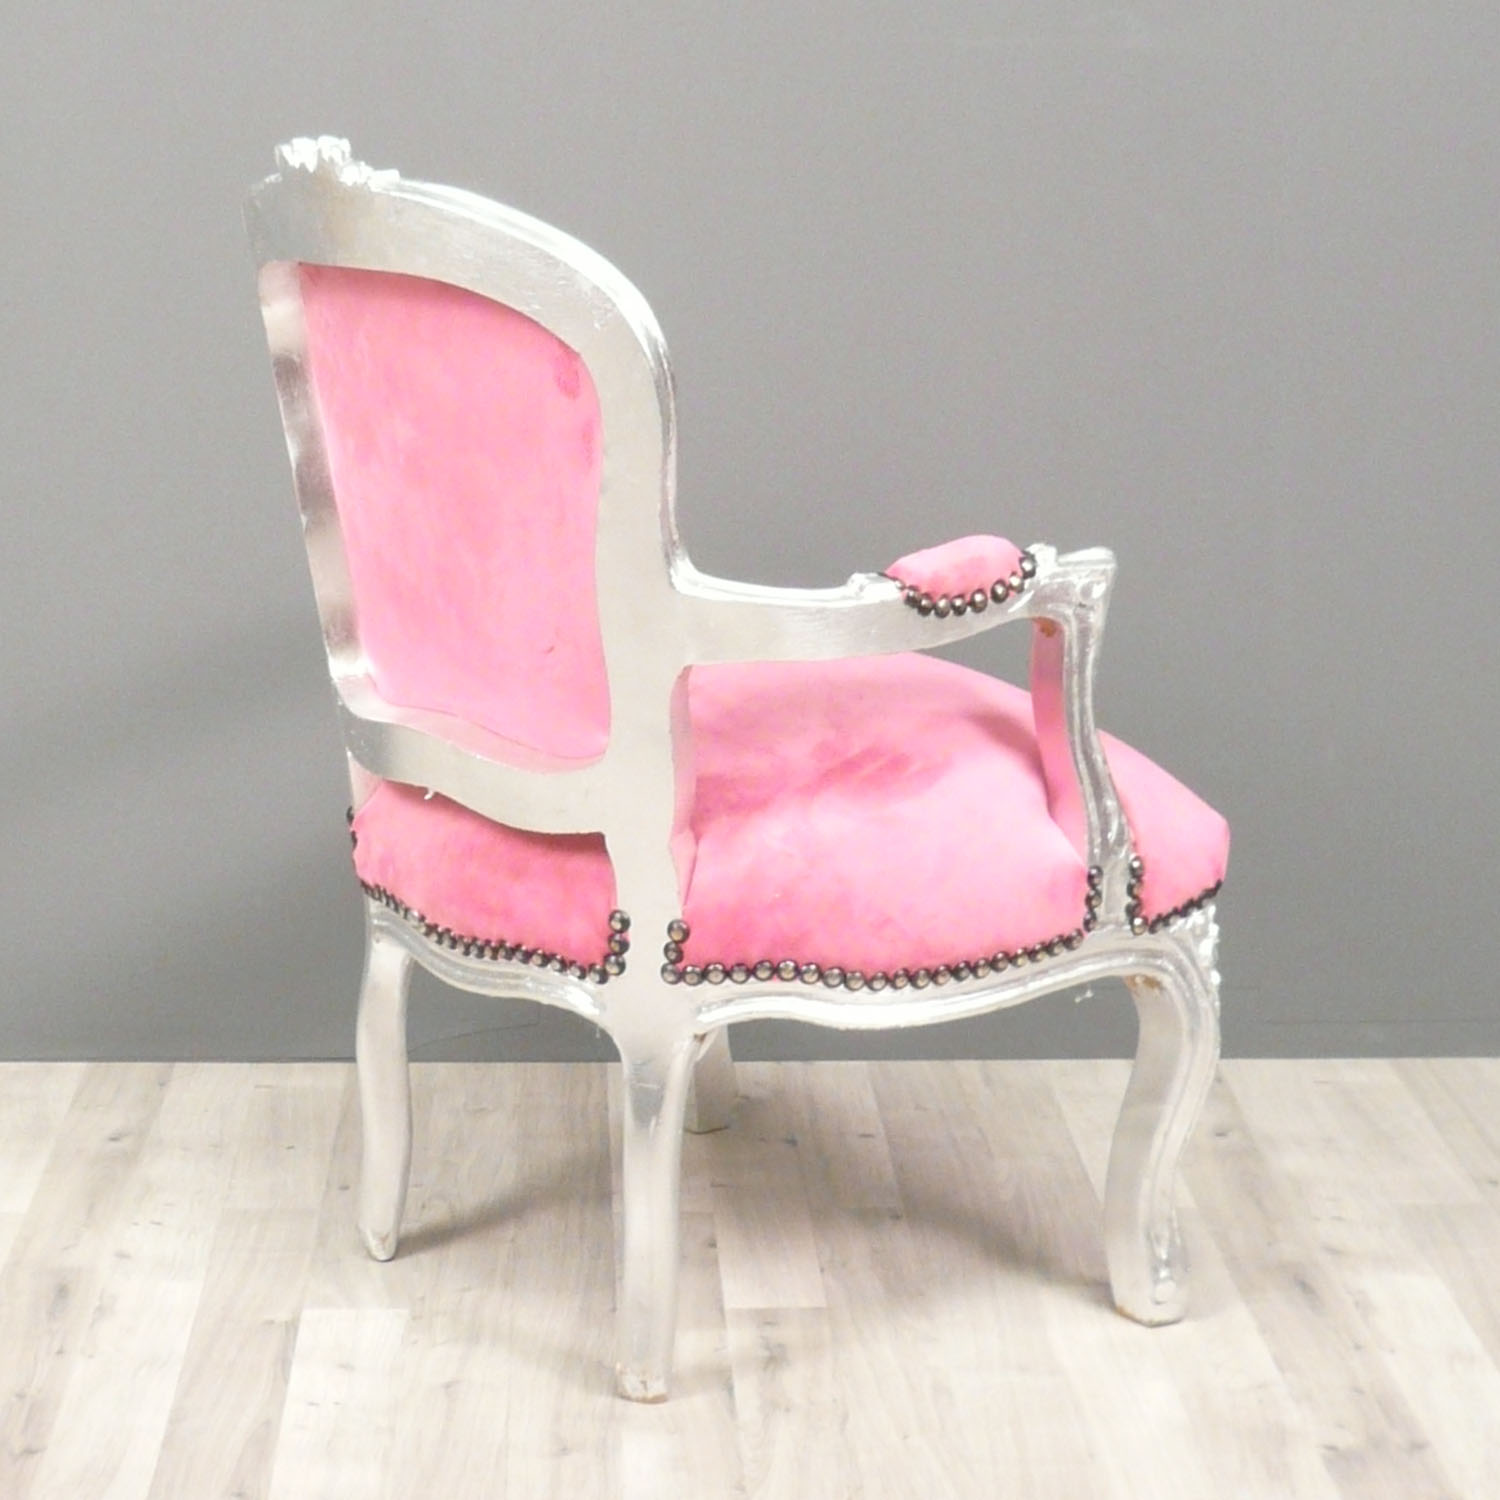 pink salon chairs wicker hammock chair with stand louis xv armchair children tiffany lamps bronze